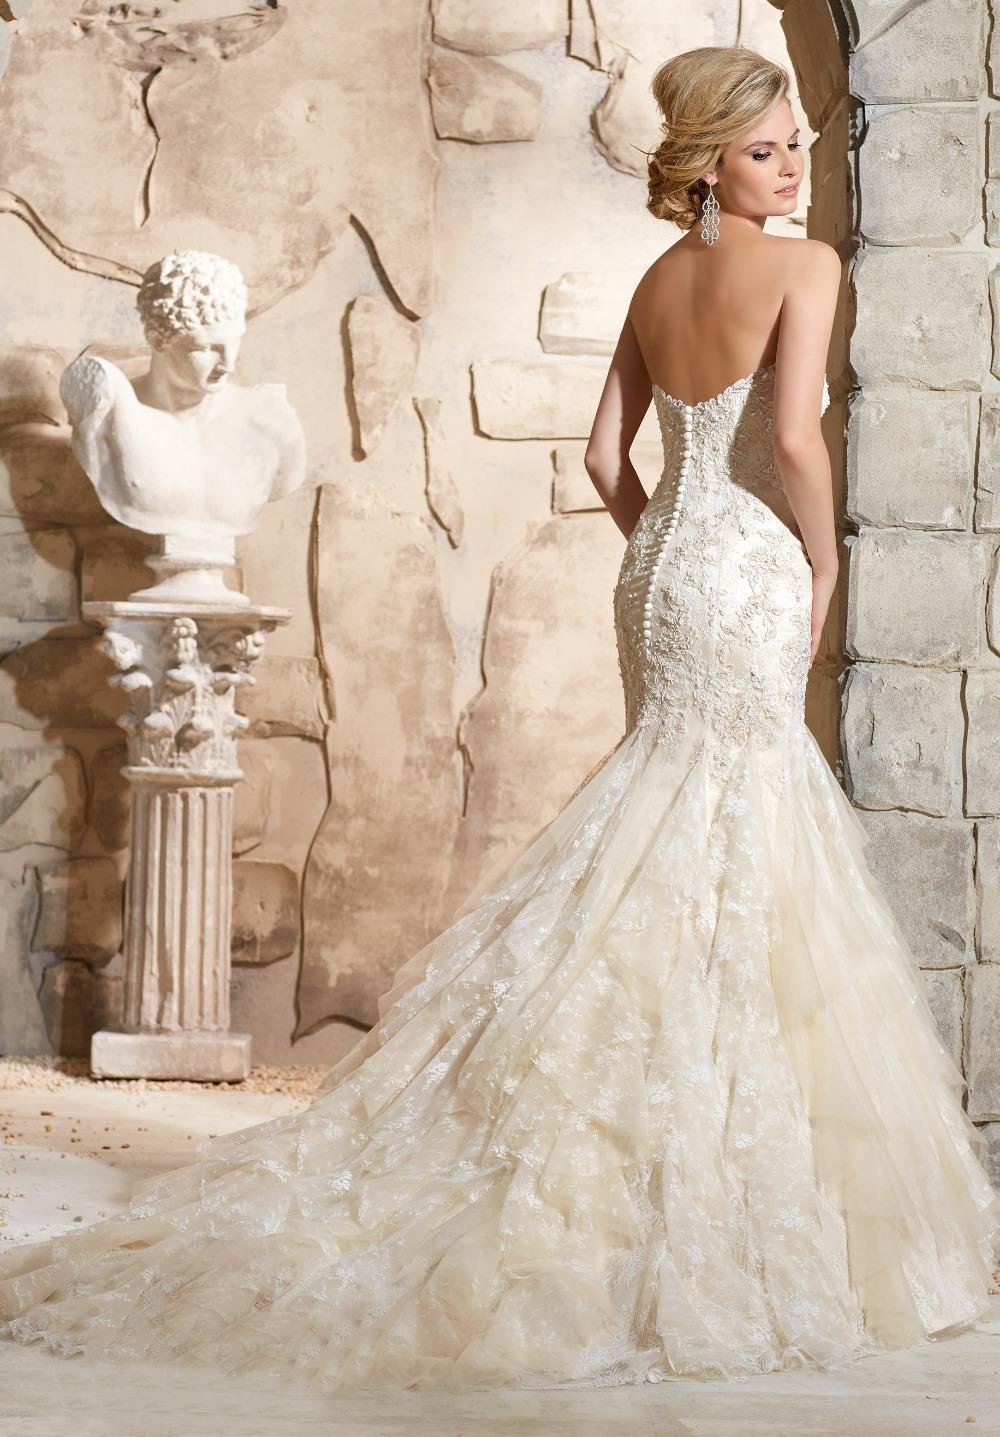 Ivory and Champagne Wedding Dresses   Dress images